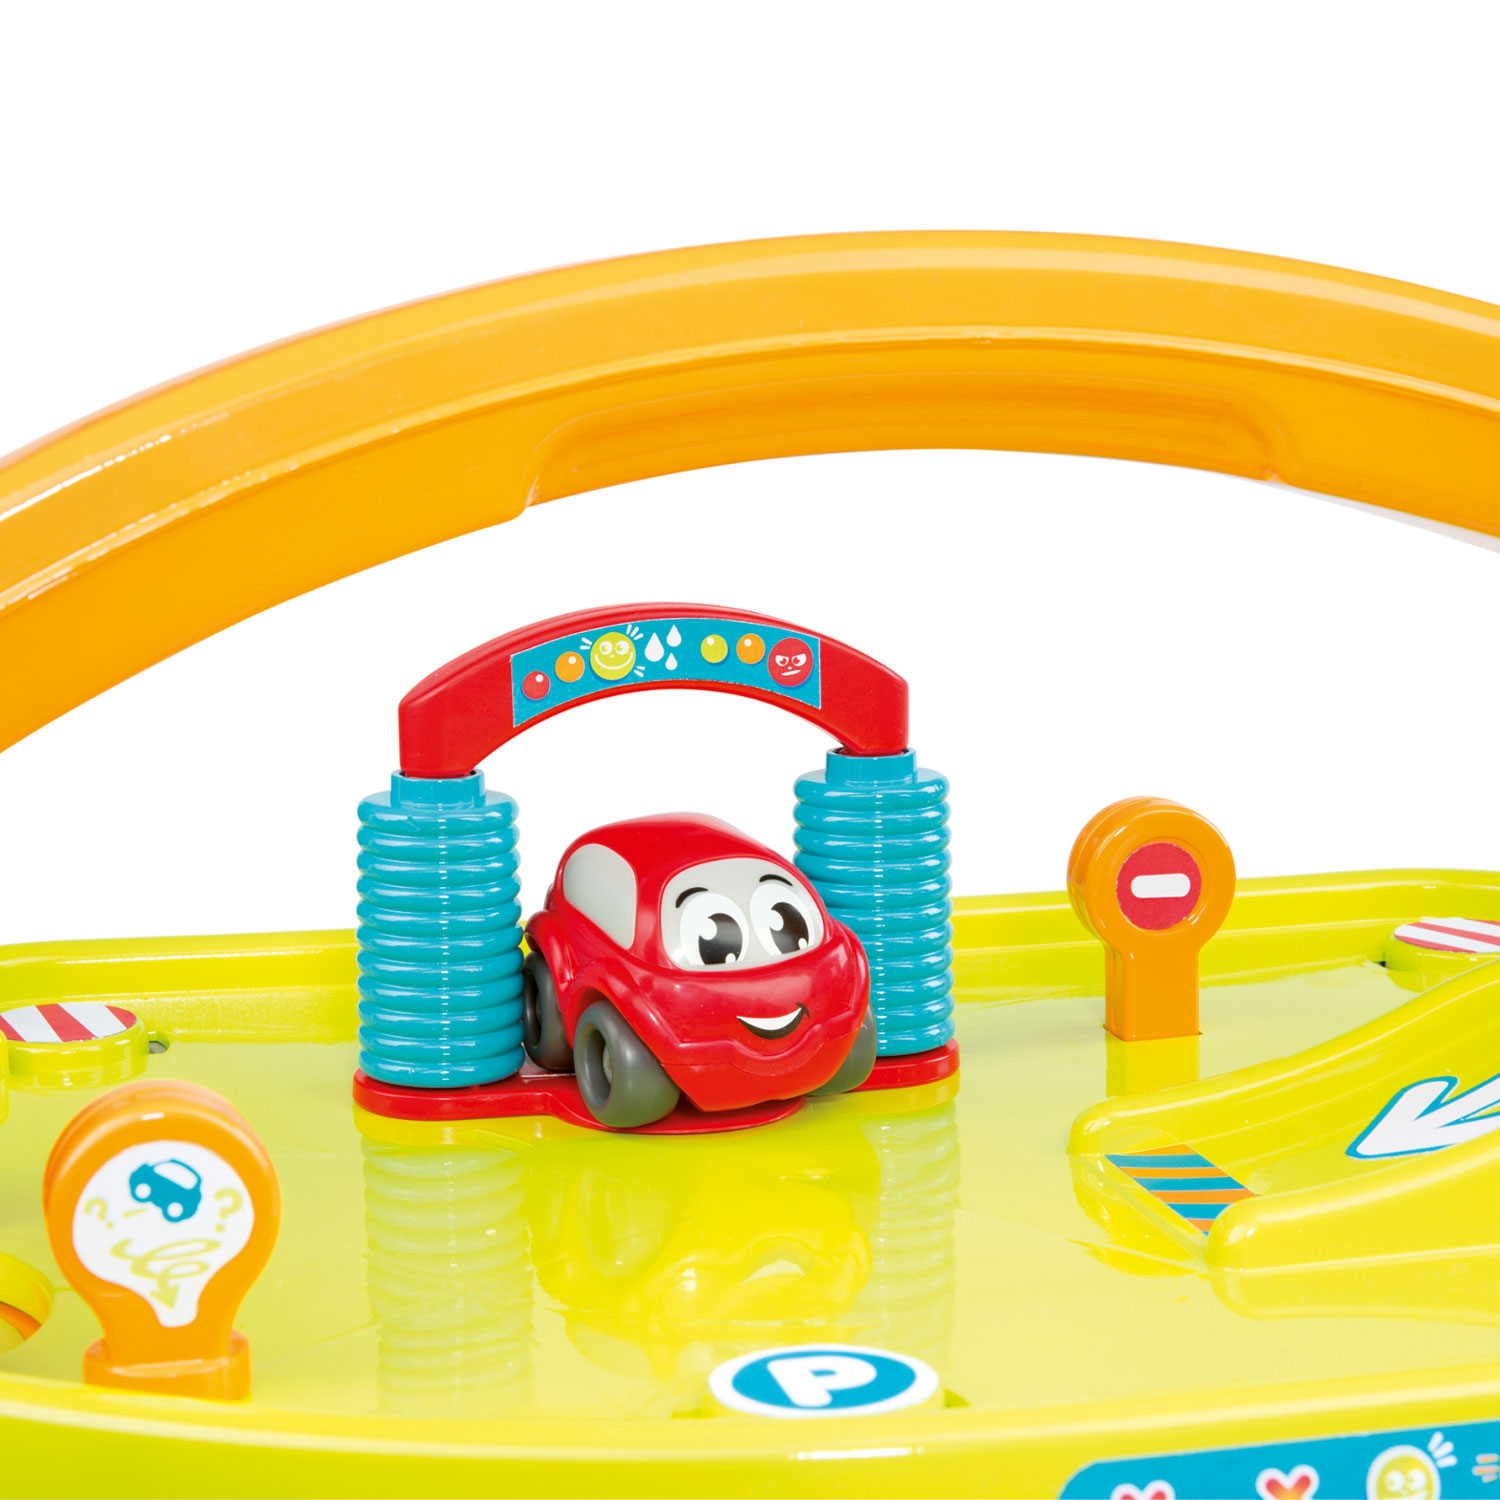 Smoby vroom planet luxe garage thimble toys - Smoby vroom planet garage ...